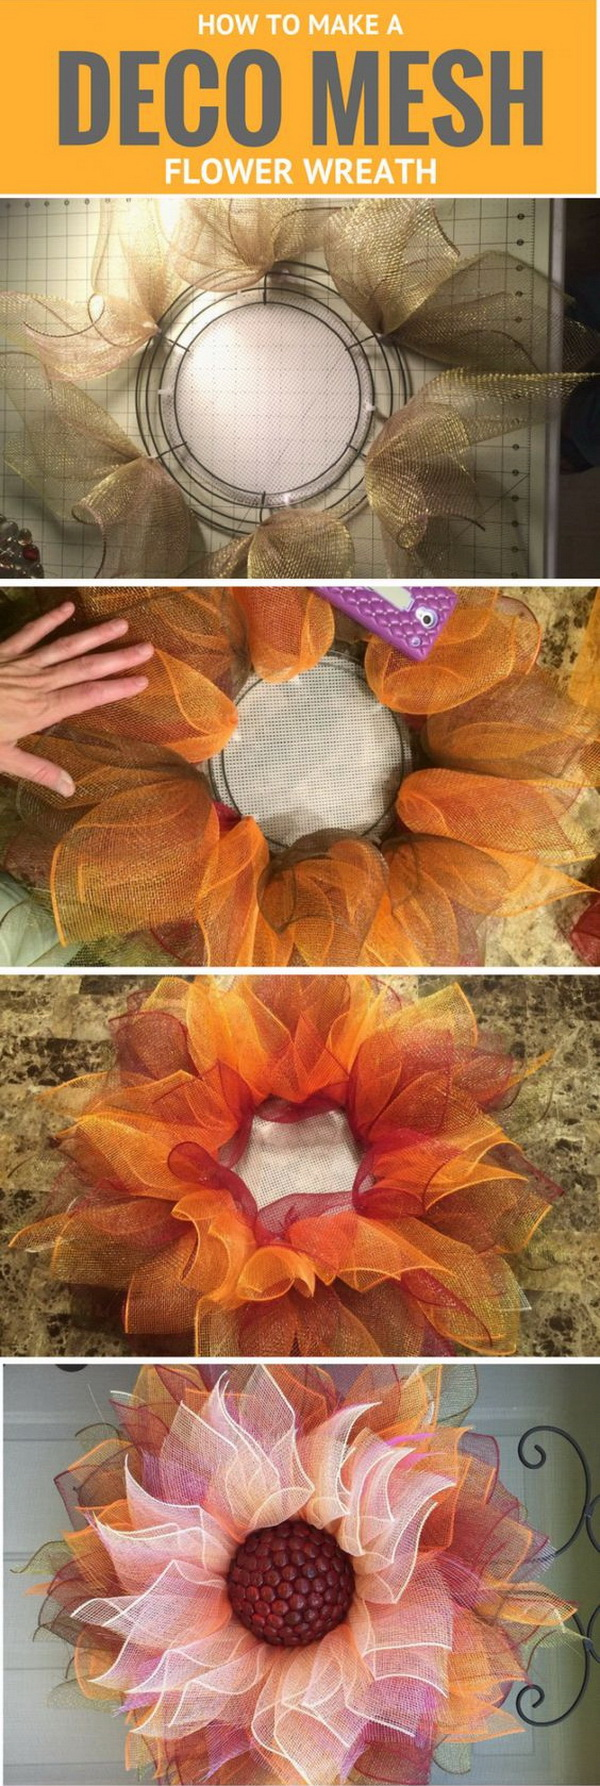 Flower Deco Mesh Wreath. Deco mesh is a popular ribbon that's an essential material in numerous crafts for its flexibility and the wide variety of colors. Deco mesh can be used to create colorful, seasonal wreaths, for instance. This flower deco mesh wreath turns out beautiful and perfect for fall and Thanksgiving Day!